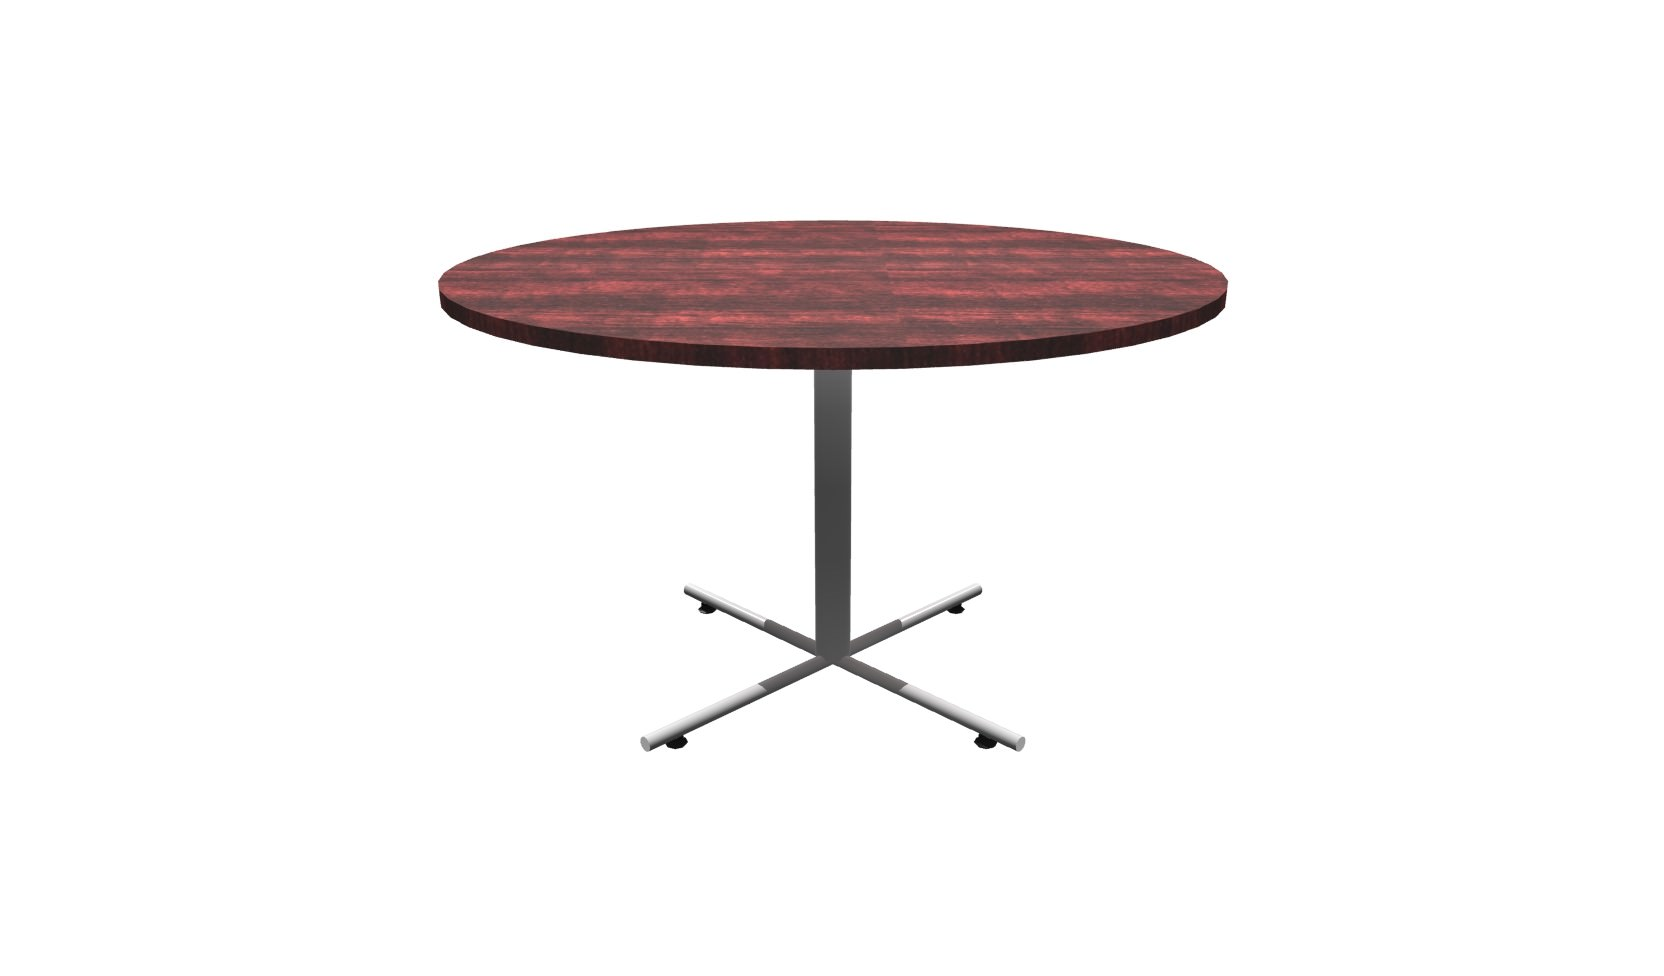 Inch Round Conference Table Mahogany Chrome - 48 inch round conference table